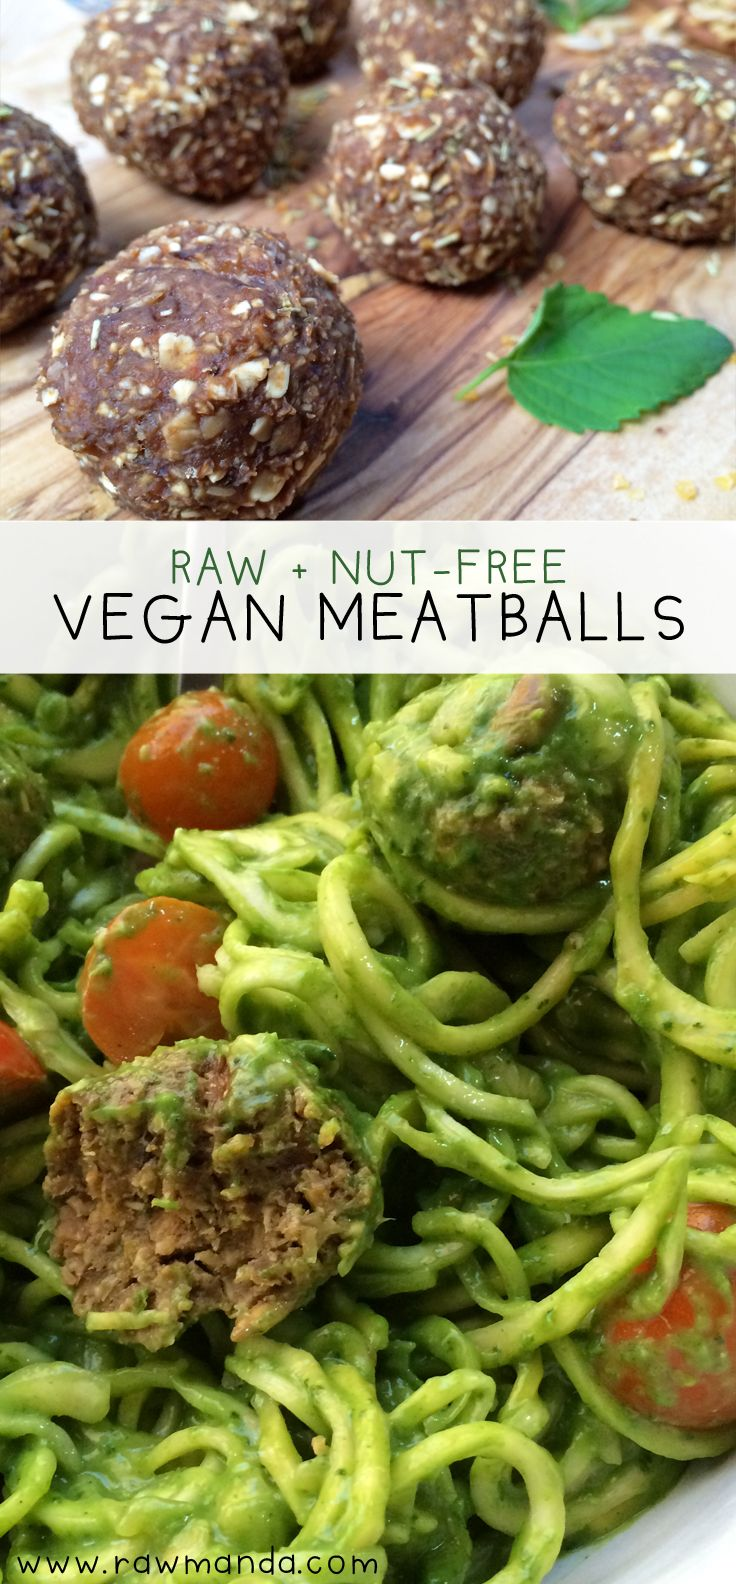 Vegan Mushroom Meatballs + Creamy Avocado Sauce - This delicious meatball recipe is packed with amazing flavors. It's the perfect meat-free substitute paired with a mouth-watering creamy avocado sauce! @rawmanda